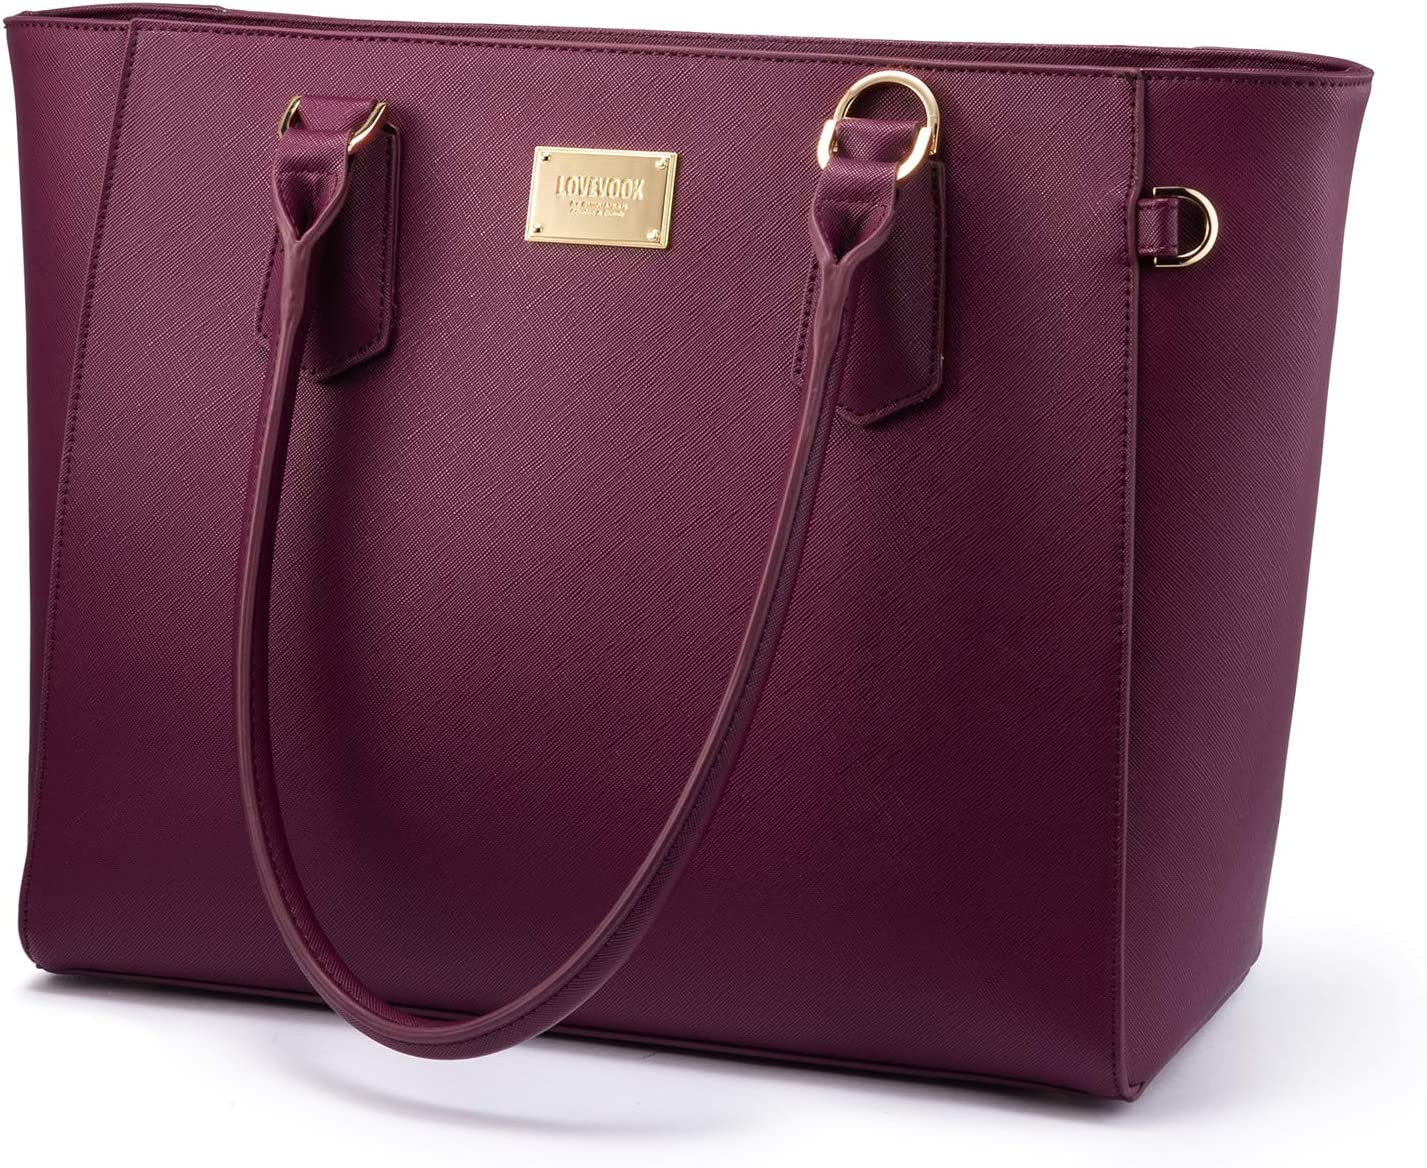 LOVEVOOK Laptop Bag for Women Leather Computer Bag Classic Work Purse, Full Padded Compartment, 15.6-Inch, Deep Plum